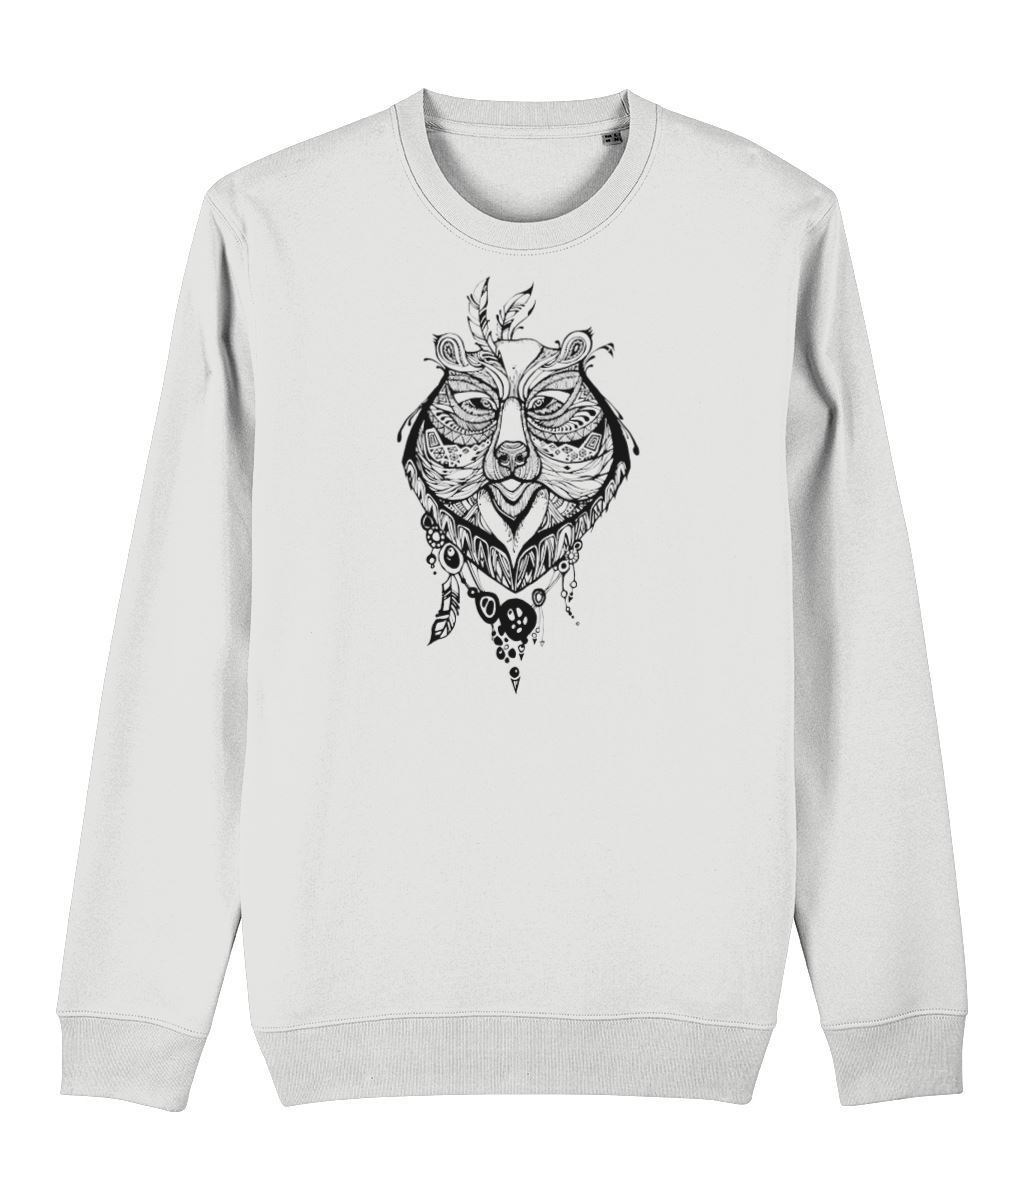 Ethnic Bear Sweatshirt Clothing IndianBelieves White X-Small